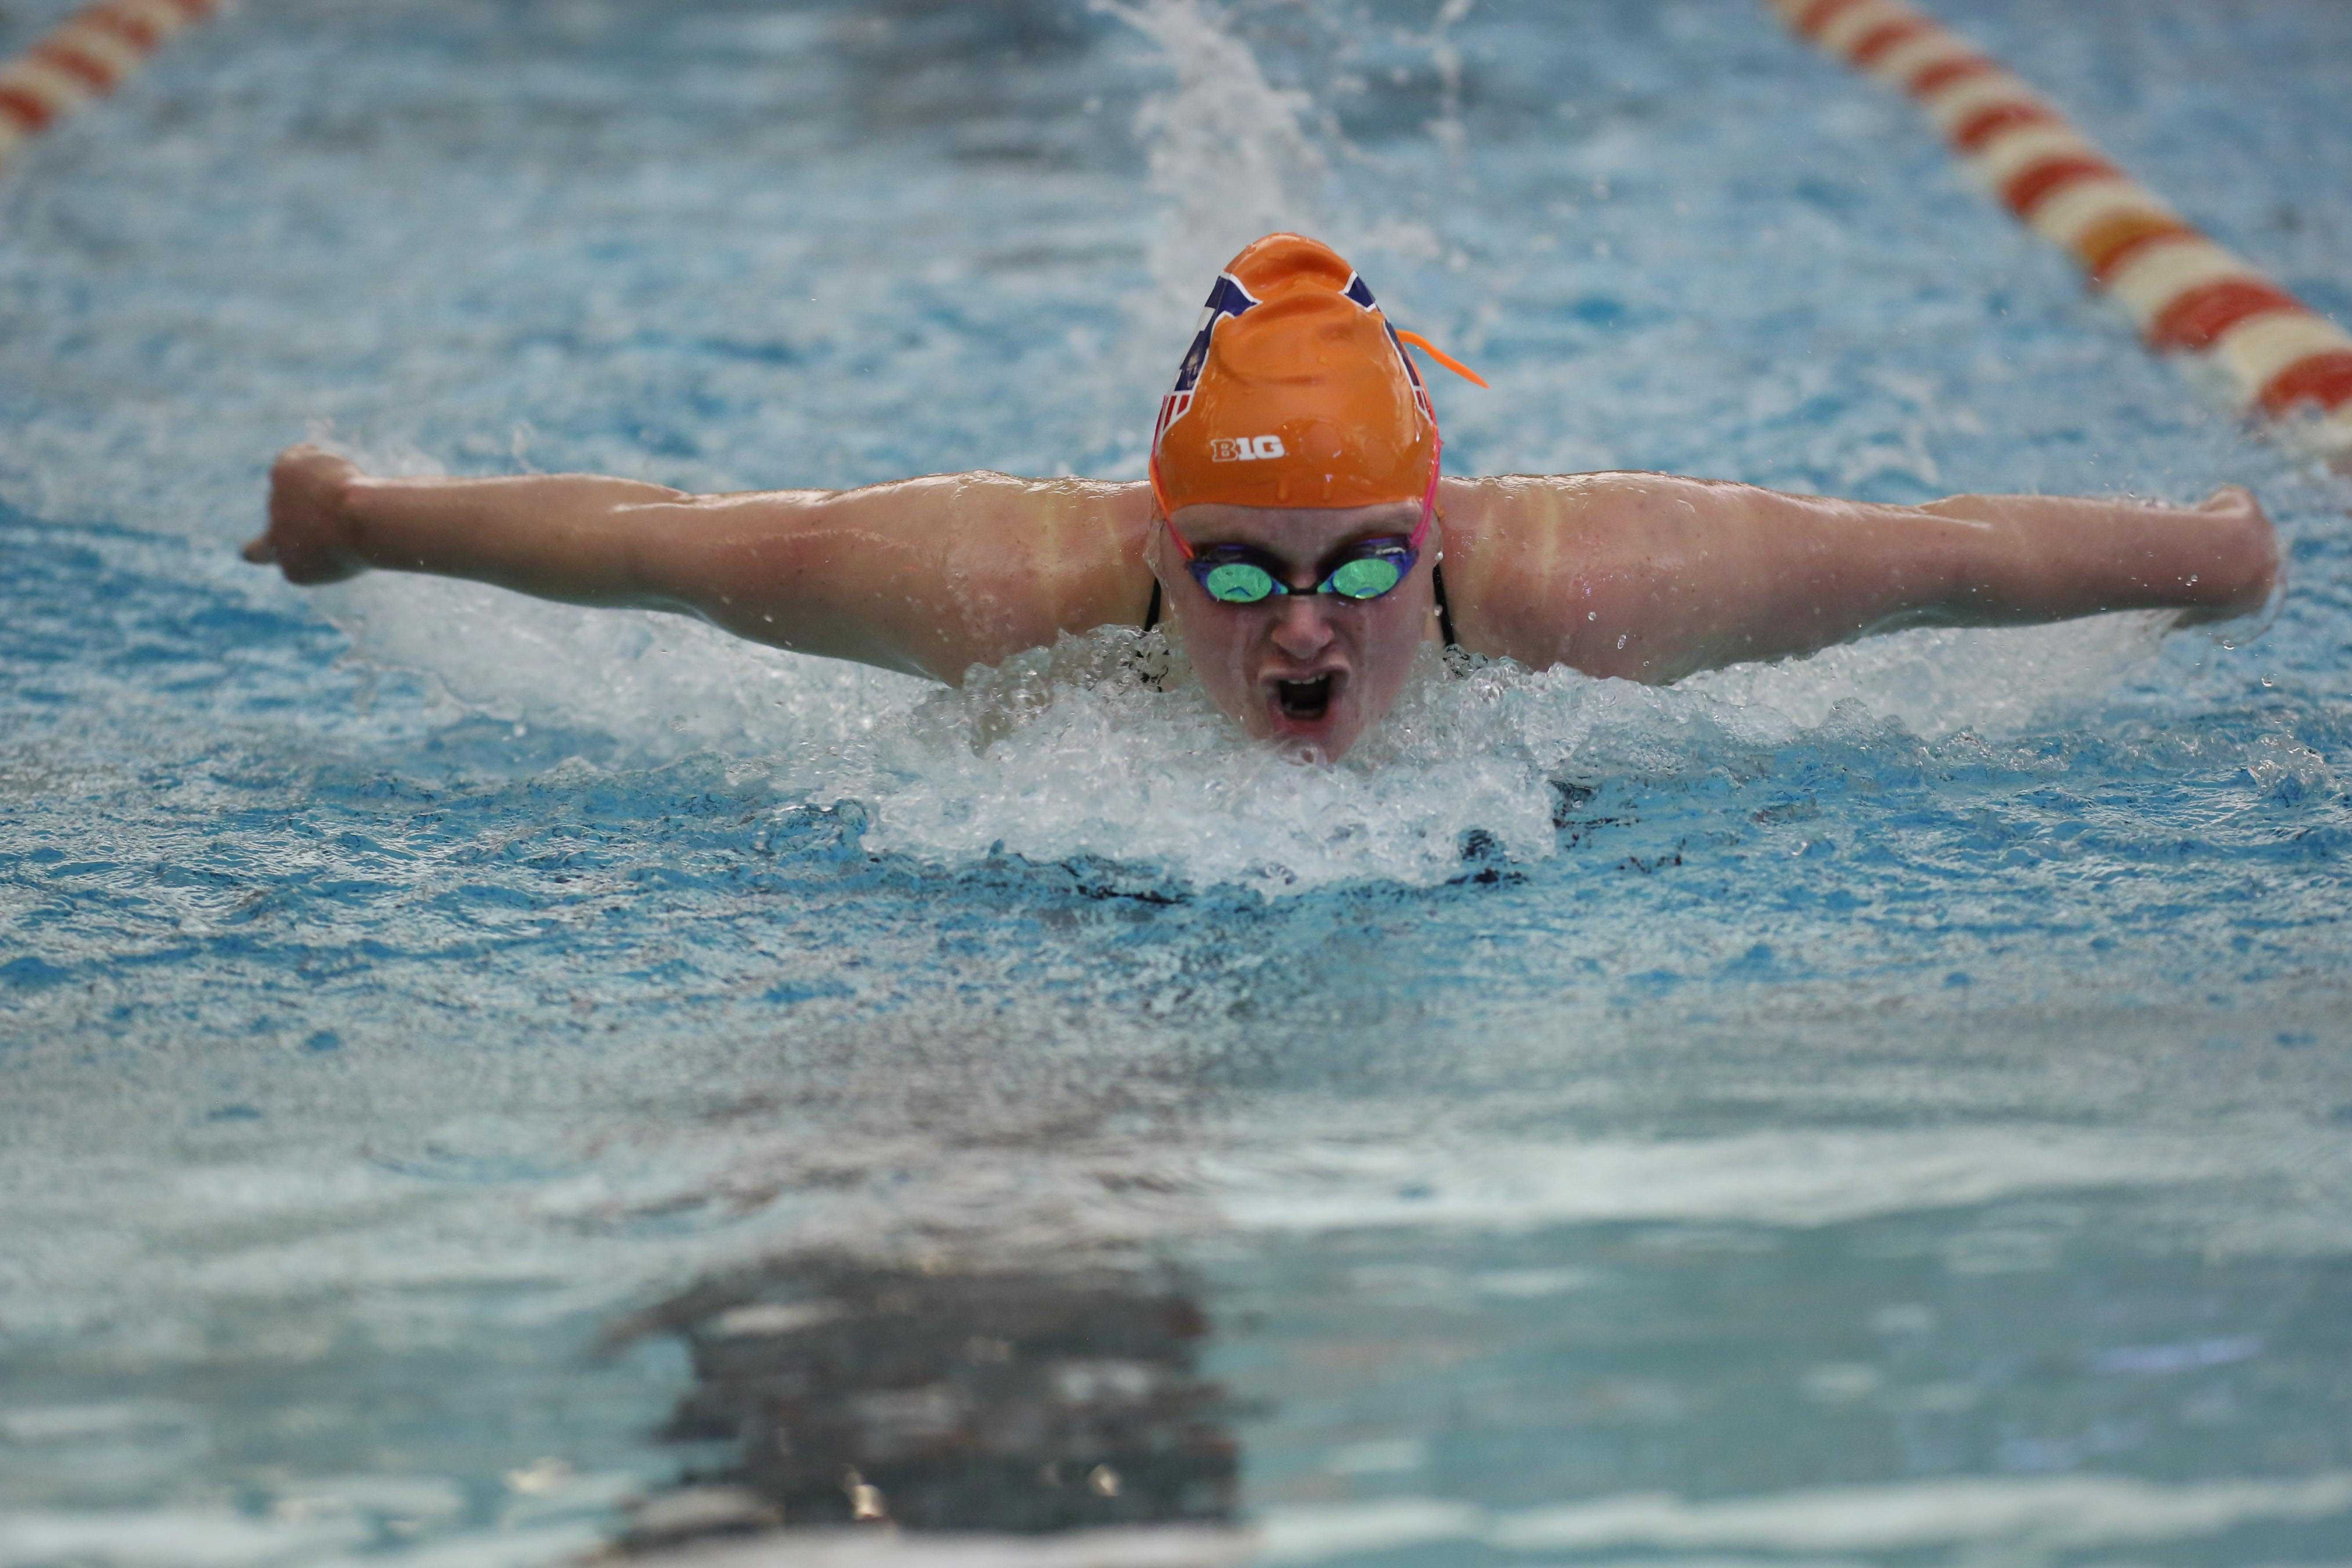 Illinois' Samantha Stratford swims the 100 yard butterfly event during the meet against Nebraska at the ARC on Jan. 24, 2015. The Illini won 171-129.